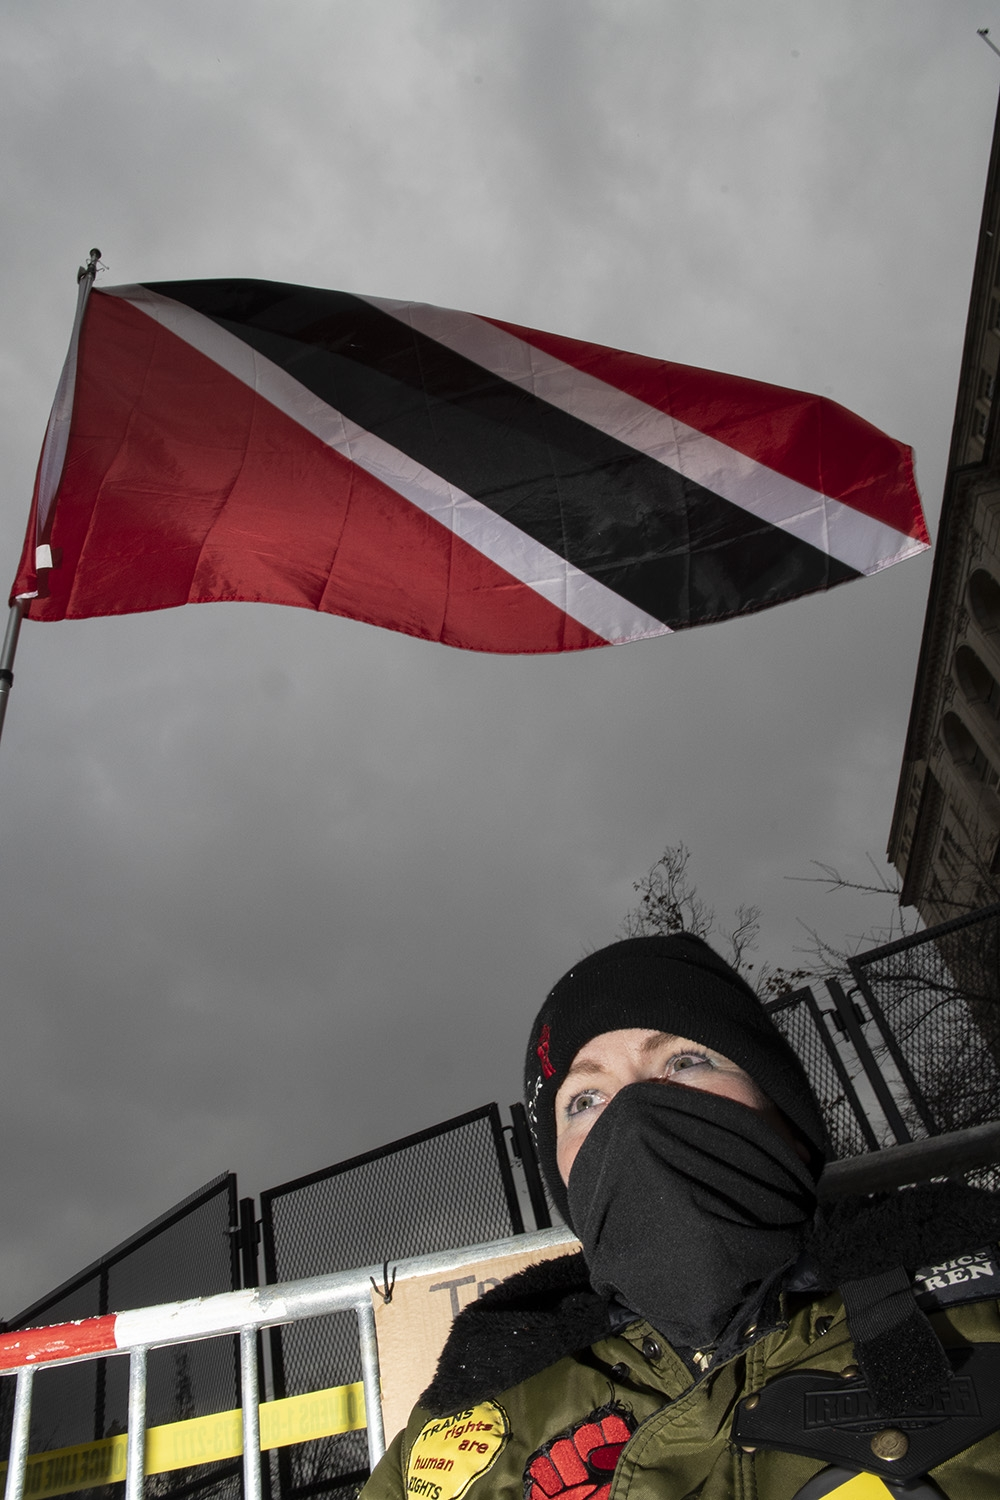 A red, white, and black flag flies against a grey skey. Below it, a white woman wearing a black knit hat, black face covering, and army green jacket looks off into the distance.